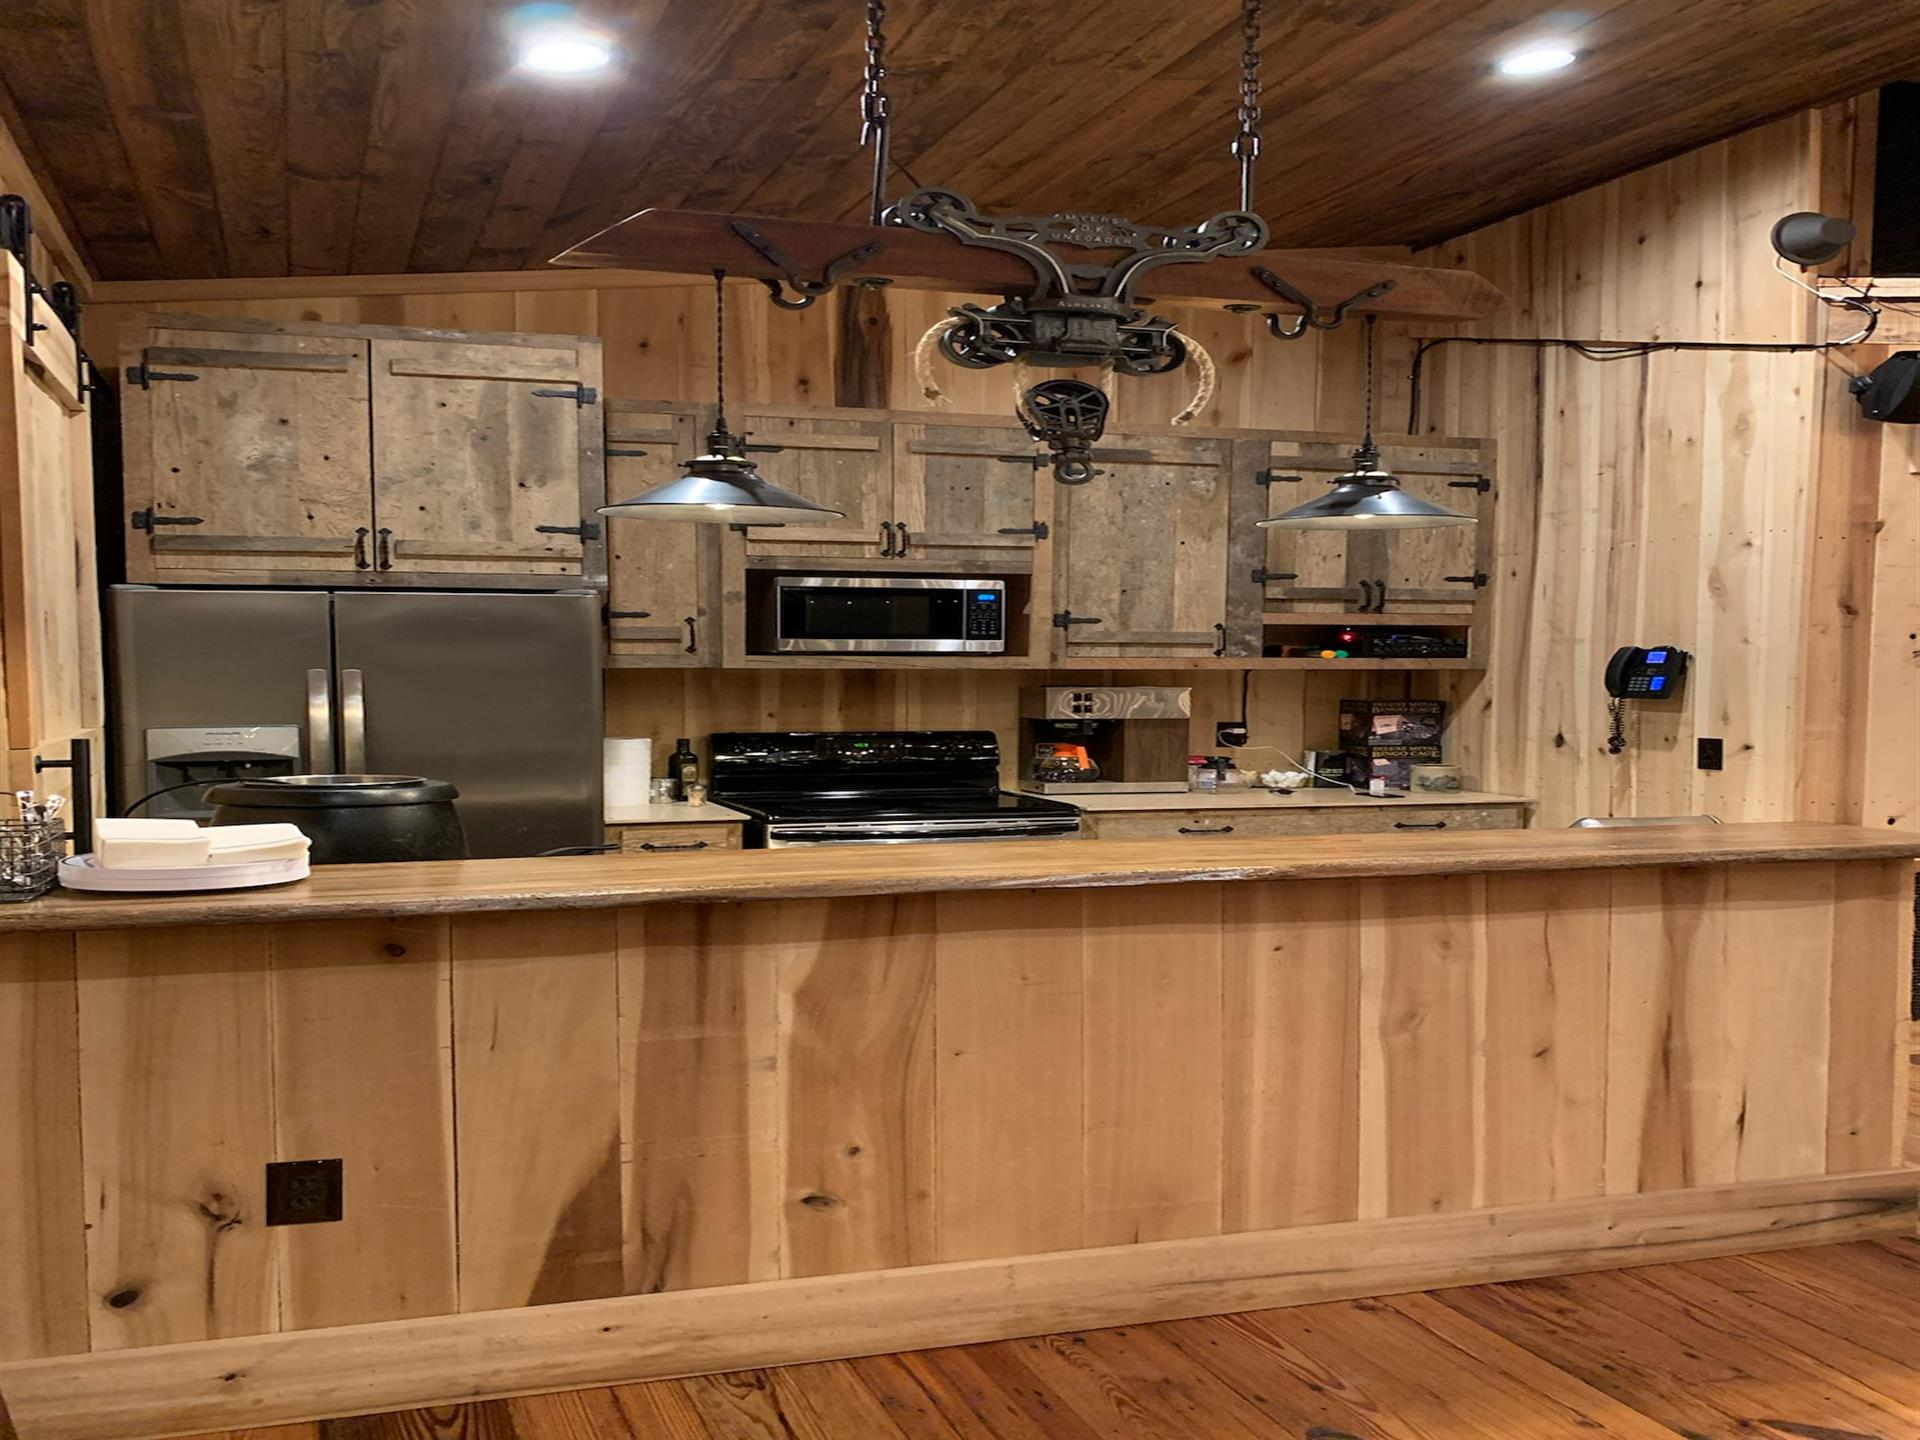 kitchen with wooden cabinets, wooden counter tops, wooden floors and ceiling. Light structure with two light fixtures above counter top hanging by metal chains